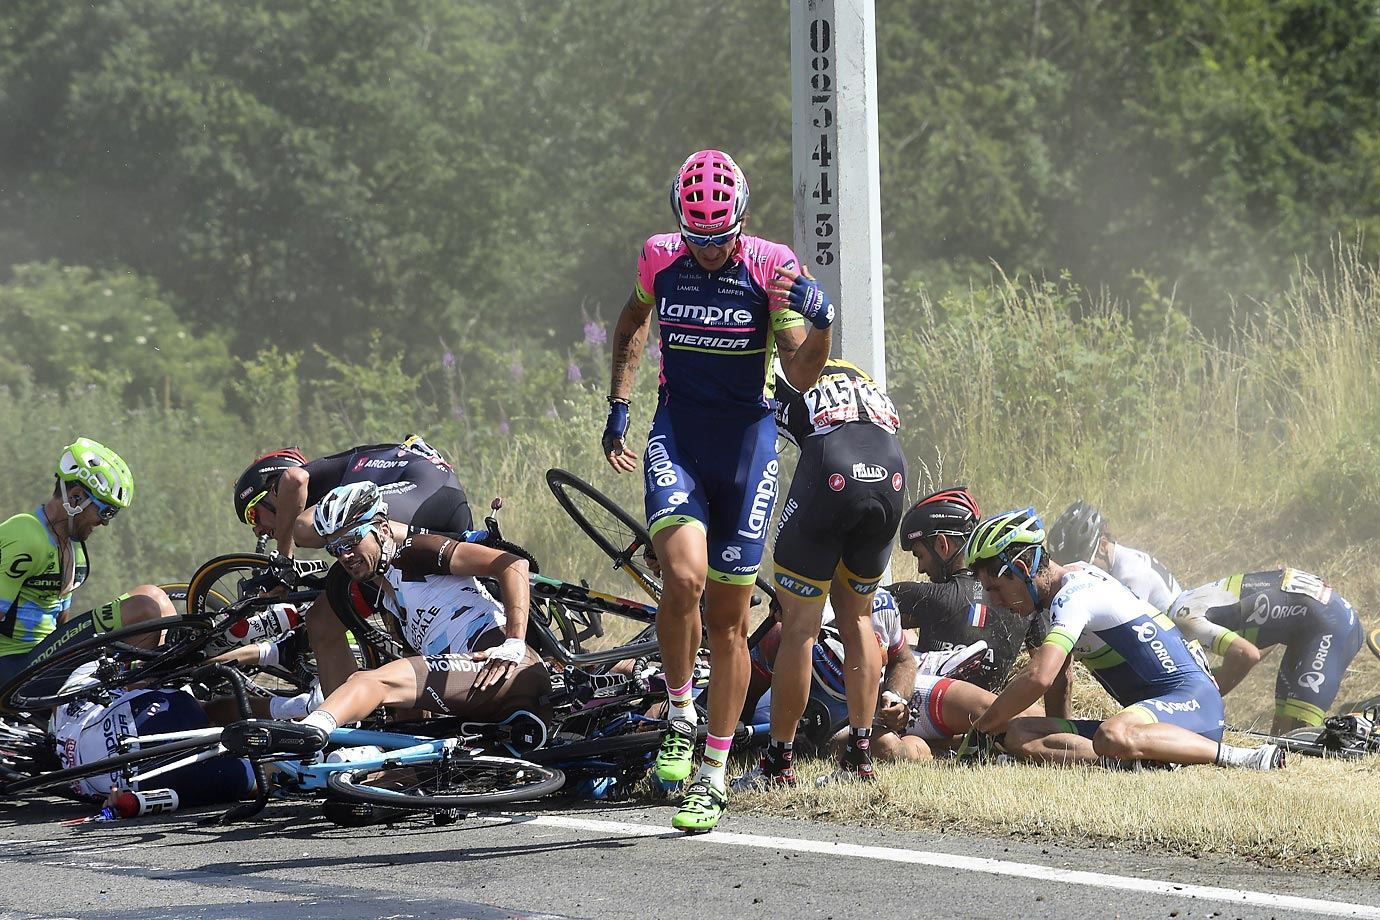 A big crash during stage 3 of the Tour de France.